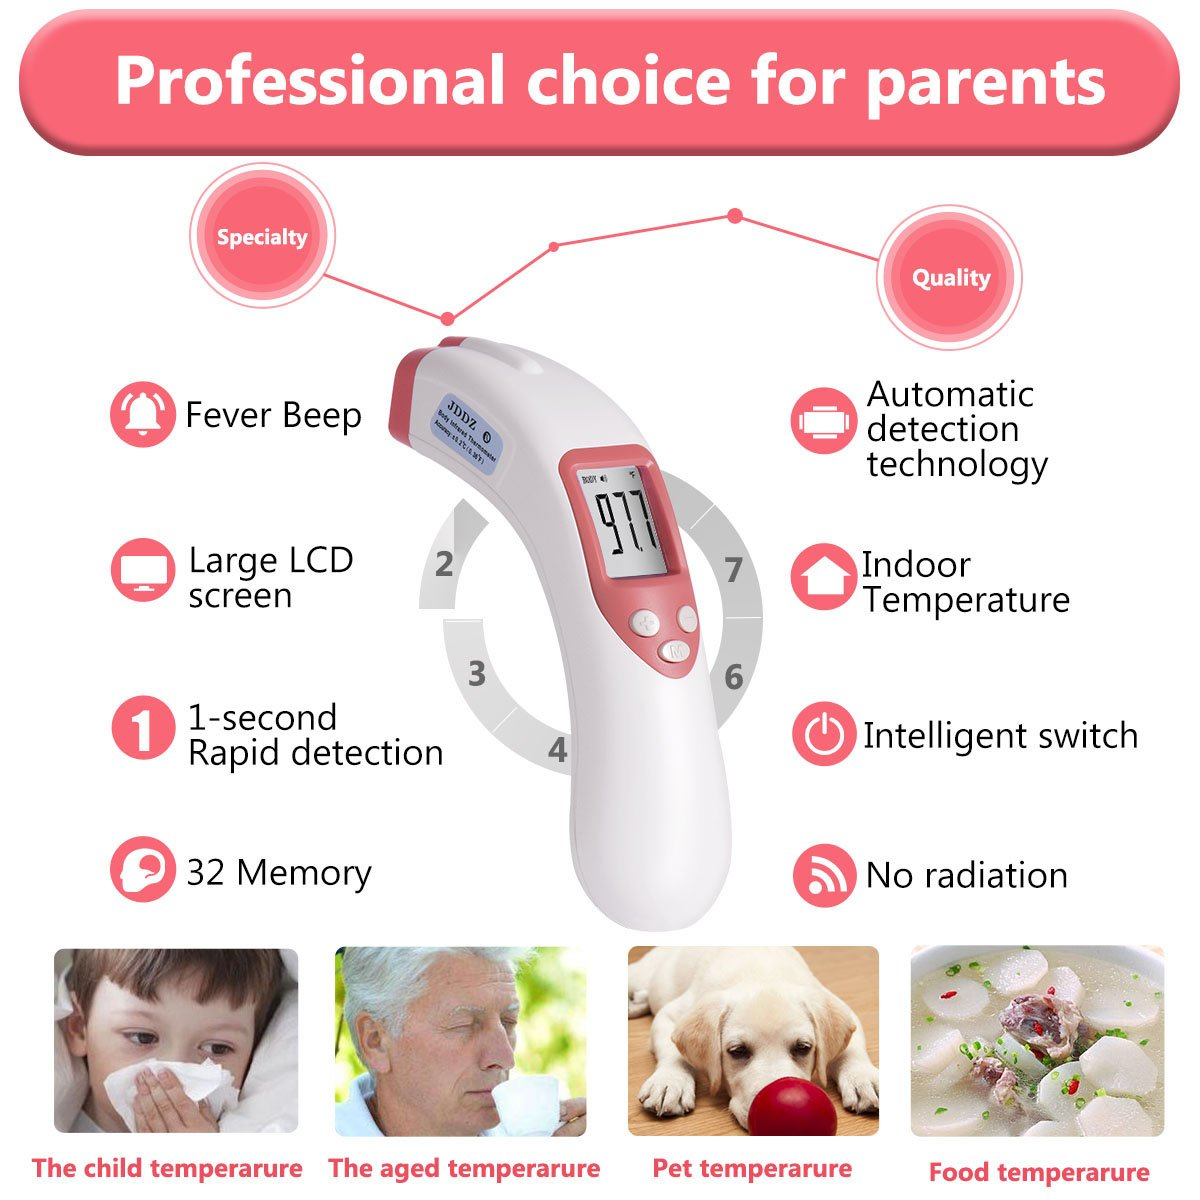 Forehead Thermometer, JDDZ Non-Contact Infants Infrared Thermometer, Professional Clinical Instant Digital Fever Temperature Scanner for Baby,Kids and Home with Bilingual Celsius Fahrenheit(Pink) by JDDZ (Image #3)